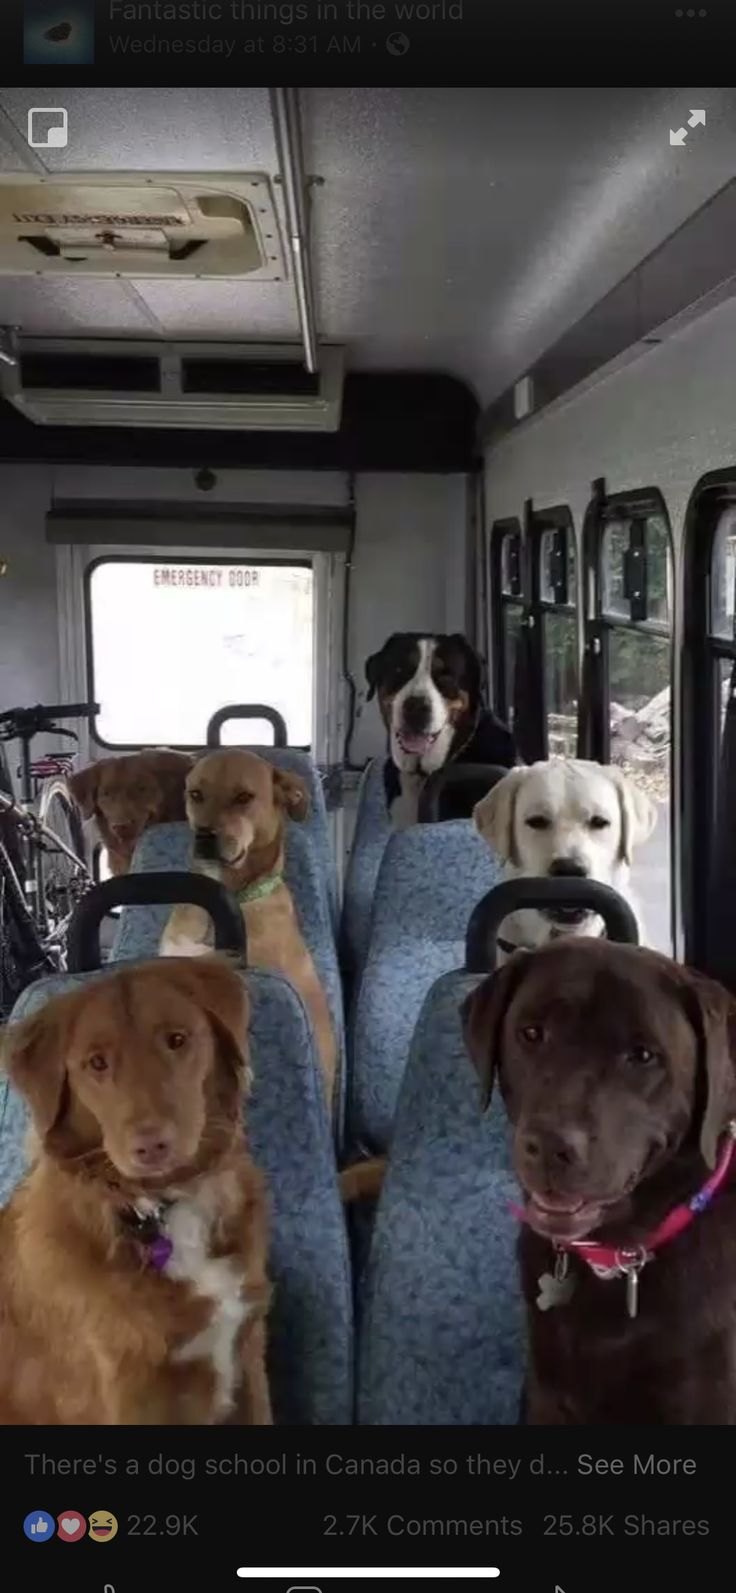 There's a dog school in Canada so they don't stay home alone. This is a picture taken on the way to school. #dogsandpuppieslabs